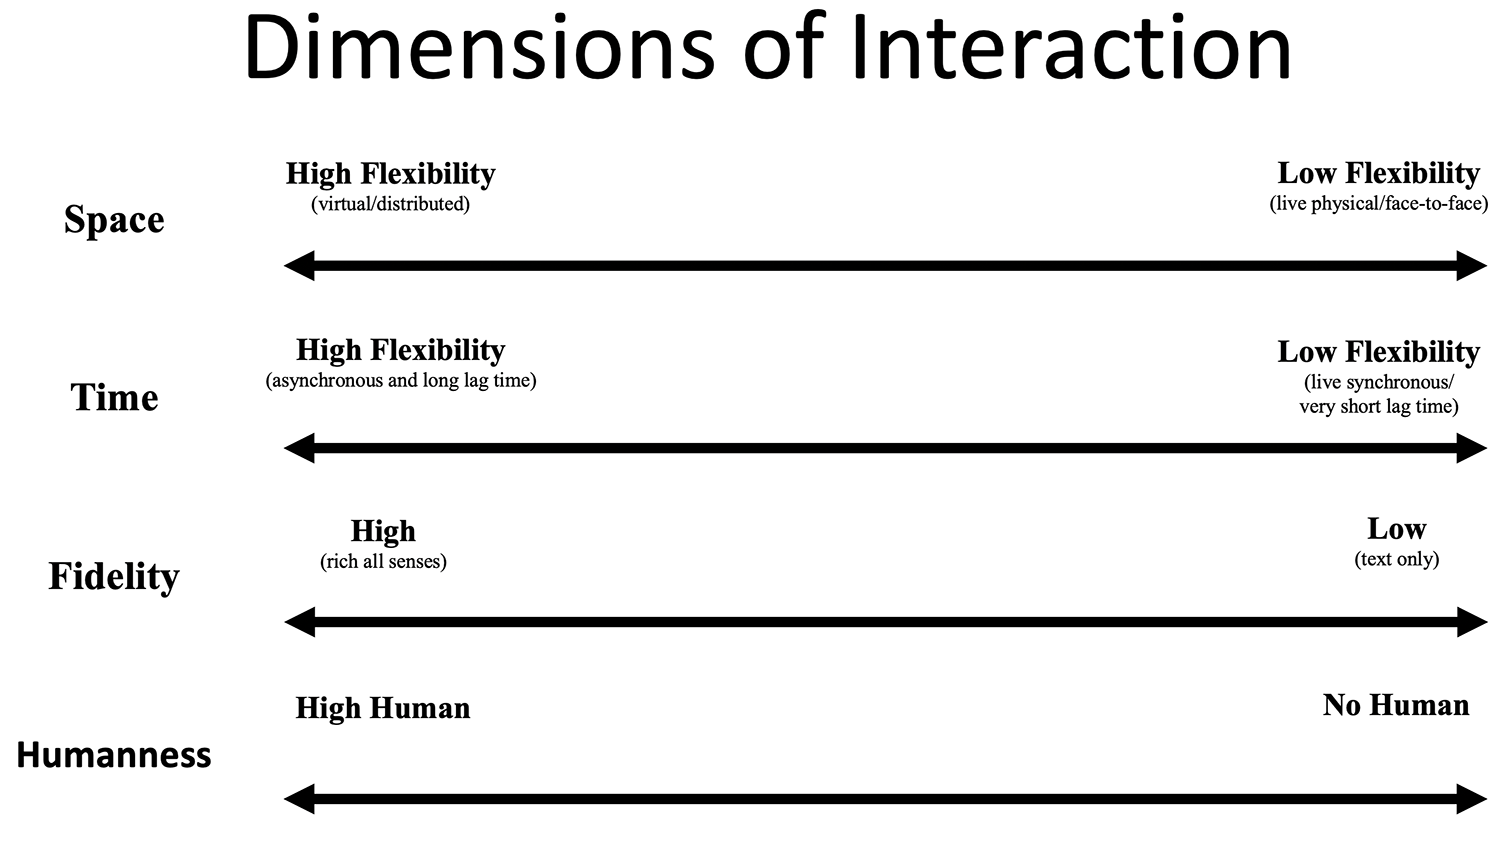 Title: Dimensions of Interaction. 4 lines with arrows at each end. Space: High Flexibility (virtual/distributed) to Low Flexibility (live physical/face-to-face). Time: High Flexibility (asynchronous and long lag time) to Low Flexibility (live synchronous/very short lag time). Fidelity: High (rich all senses) to Low (text only). Humanness: High Human to No Human.